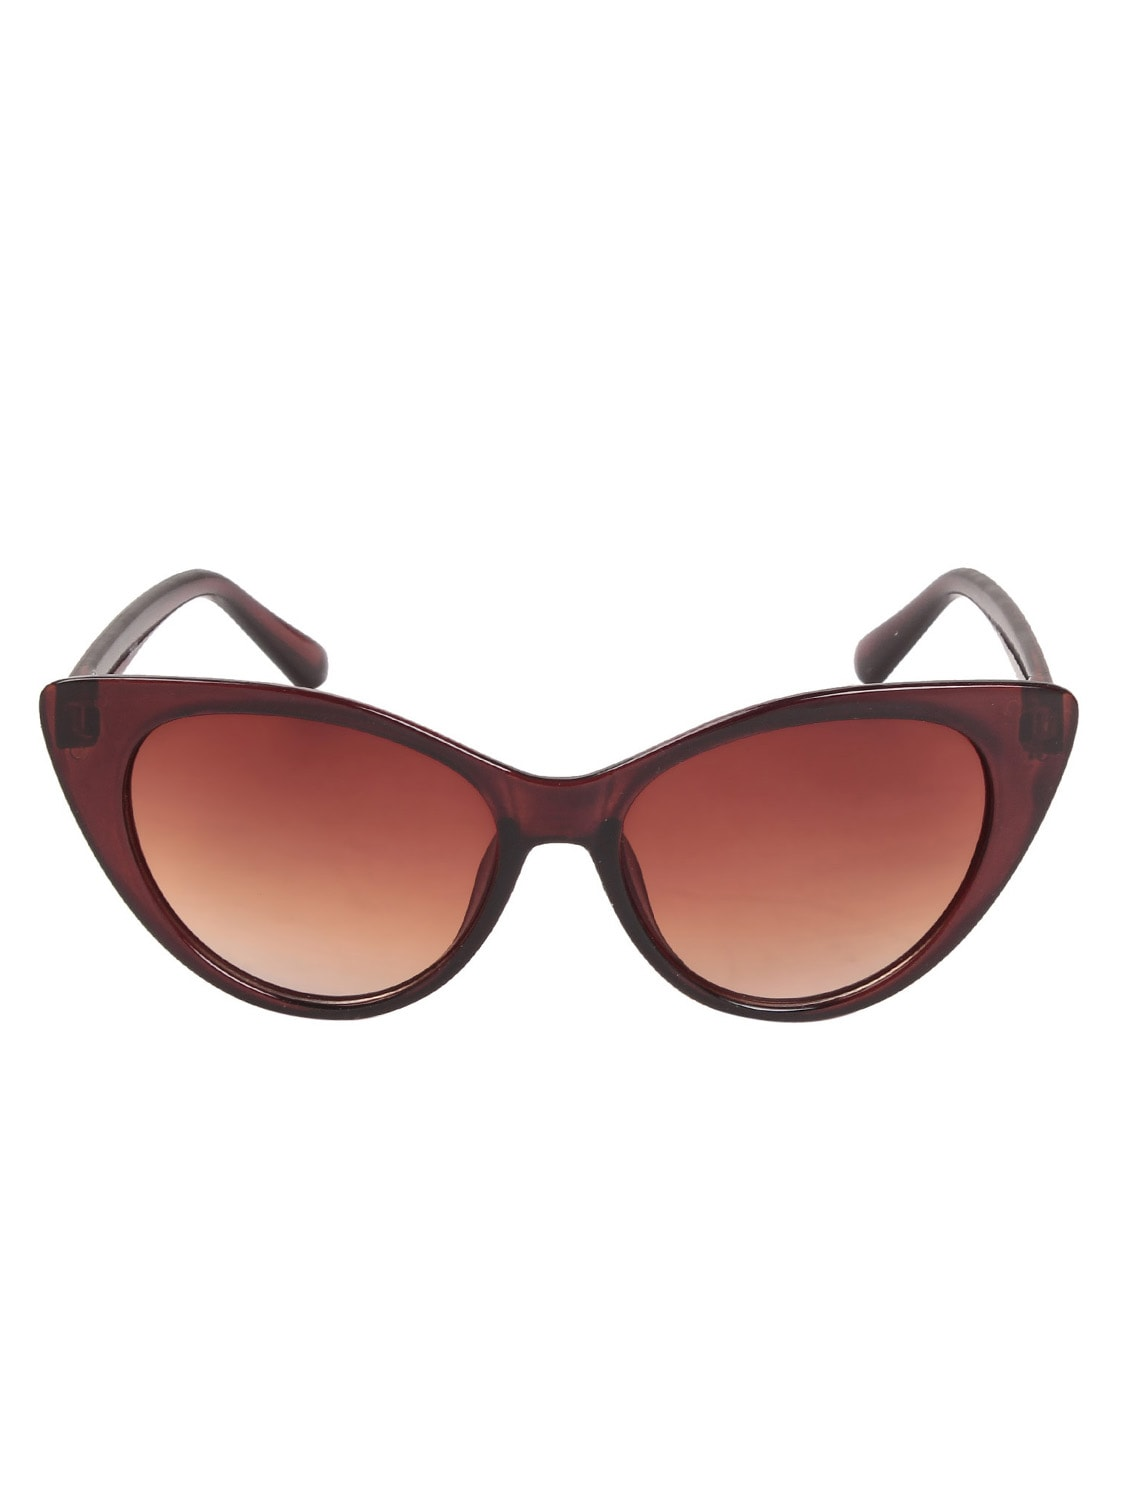 Louis Geneve Sunglasses For Women Cat Eye LG-SG-33-CBR-BROWN - By